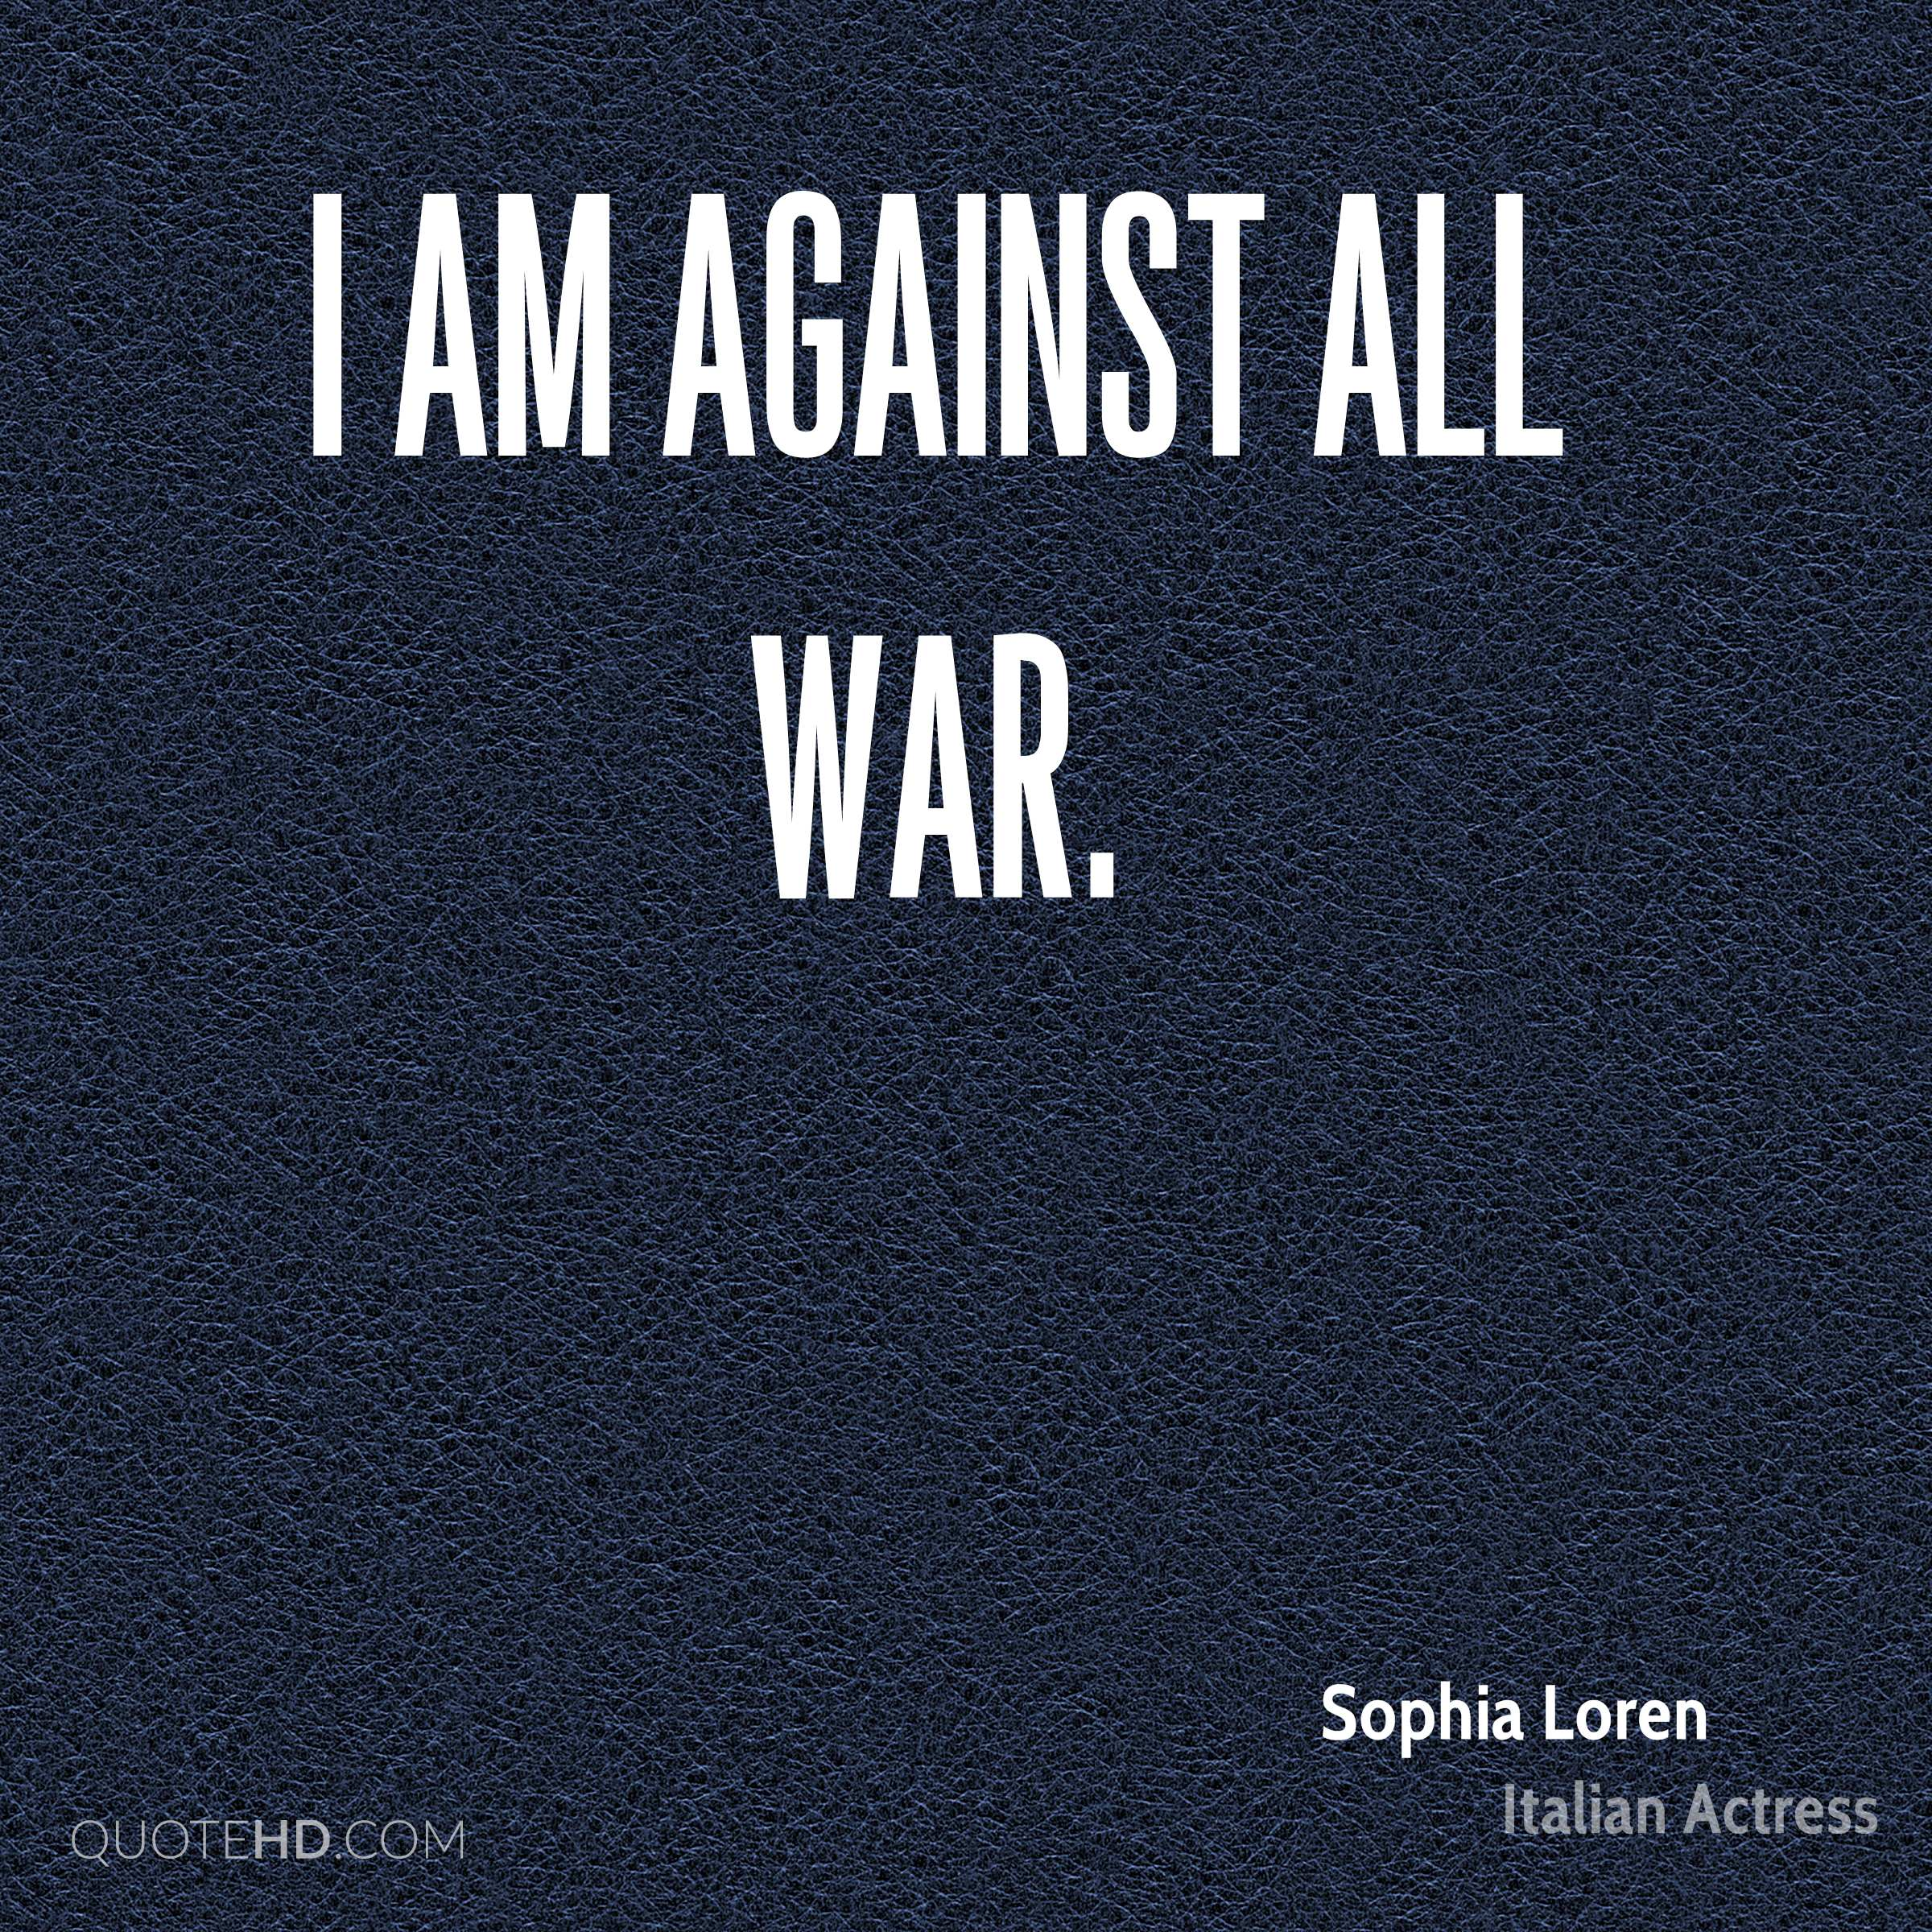 I am against all war.